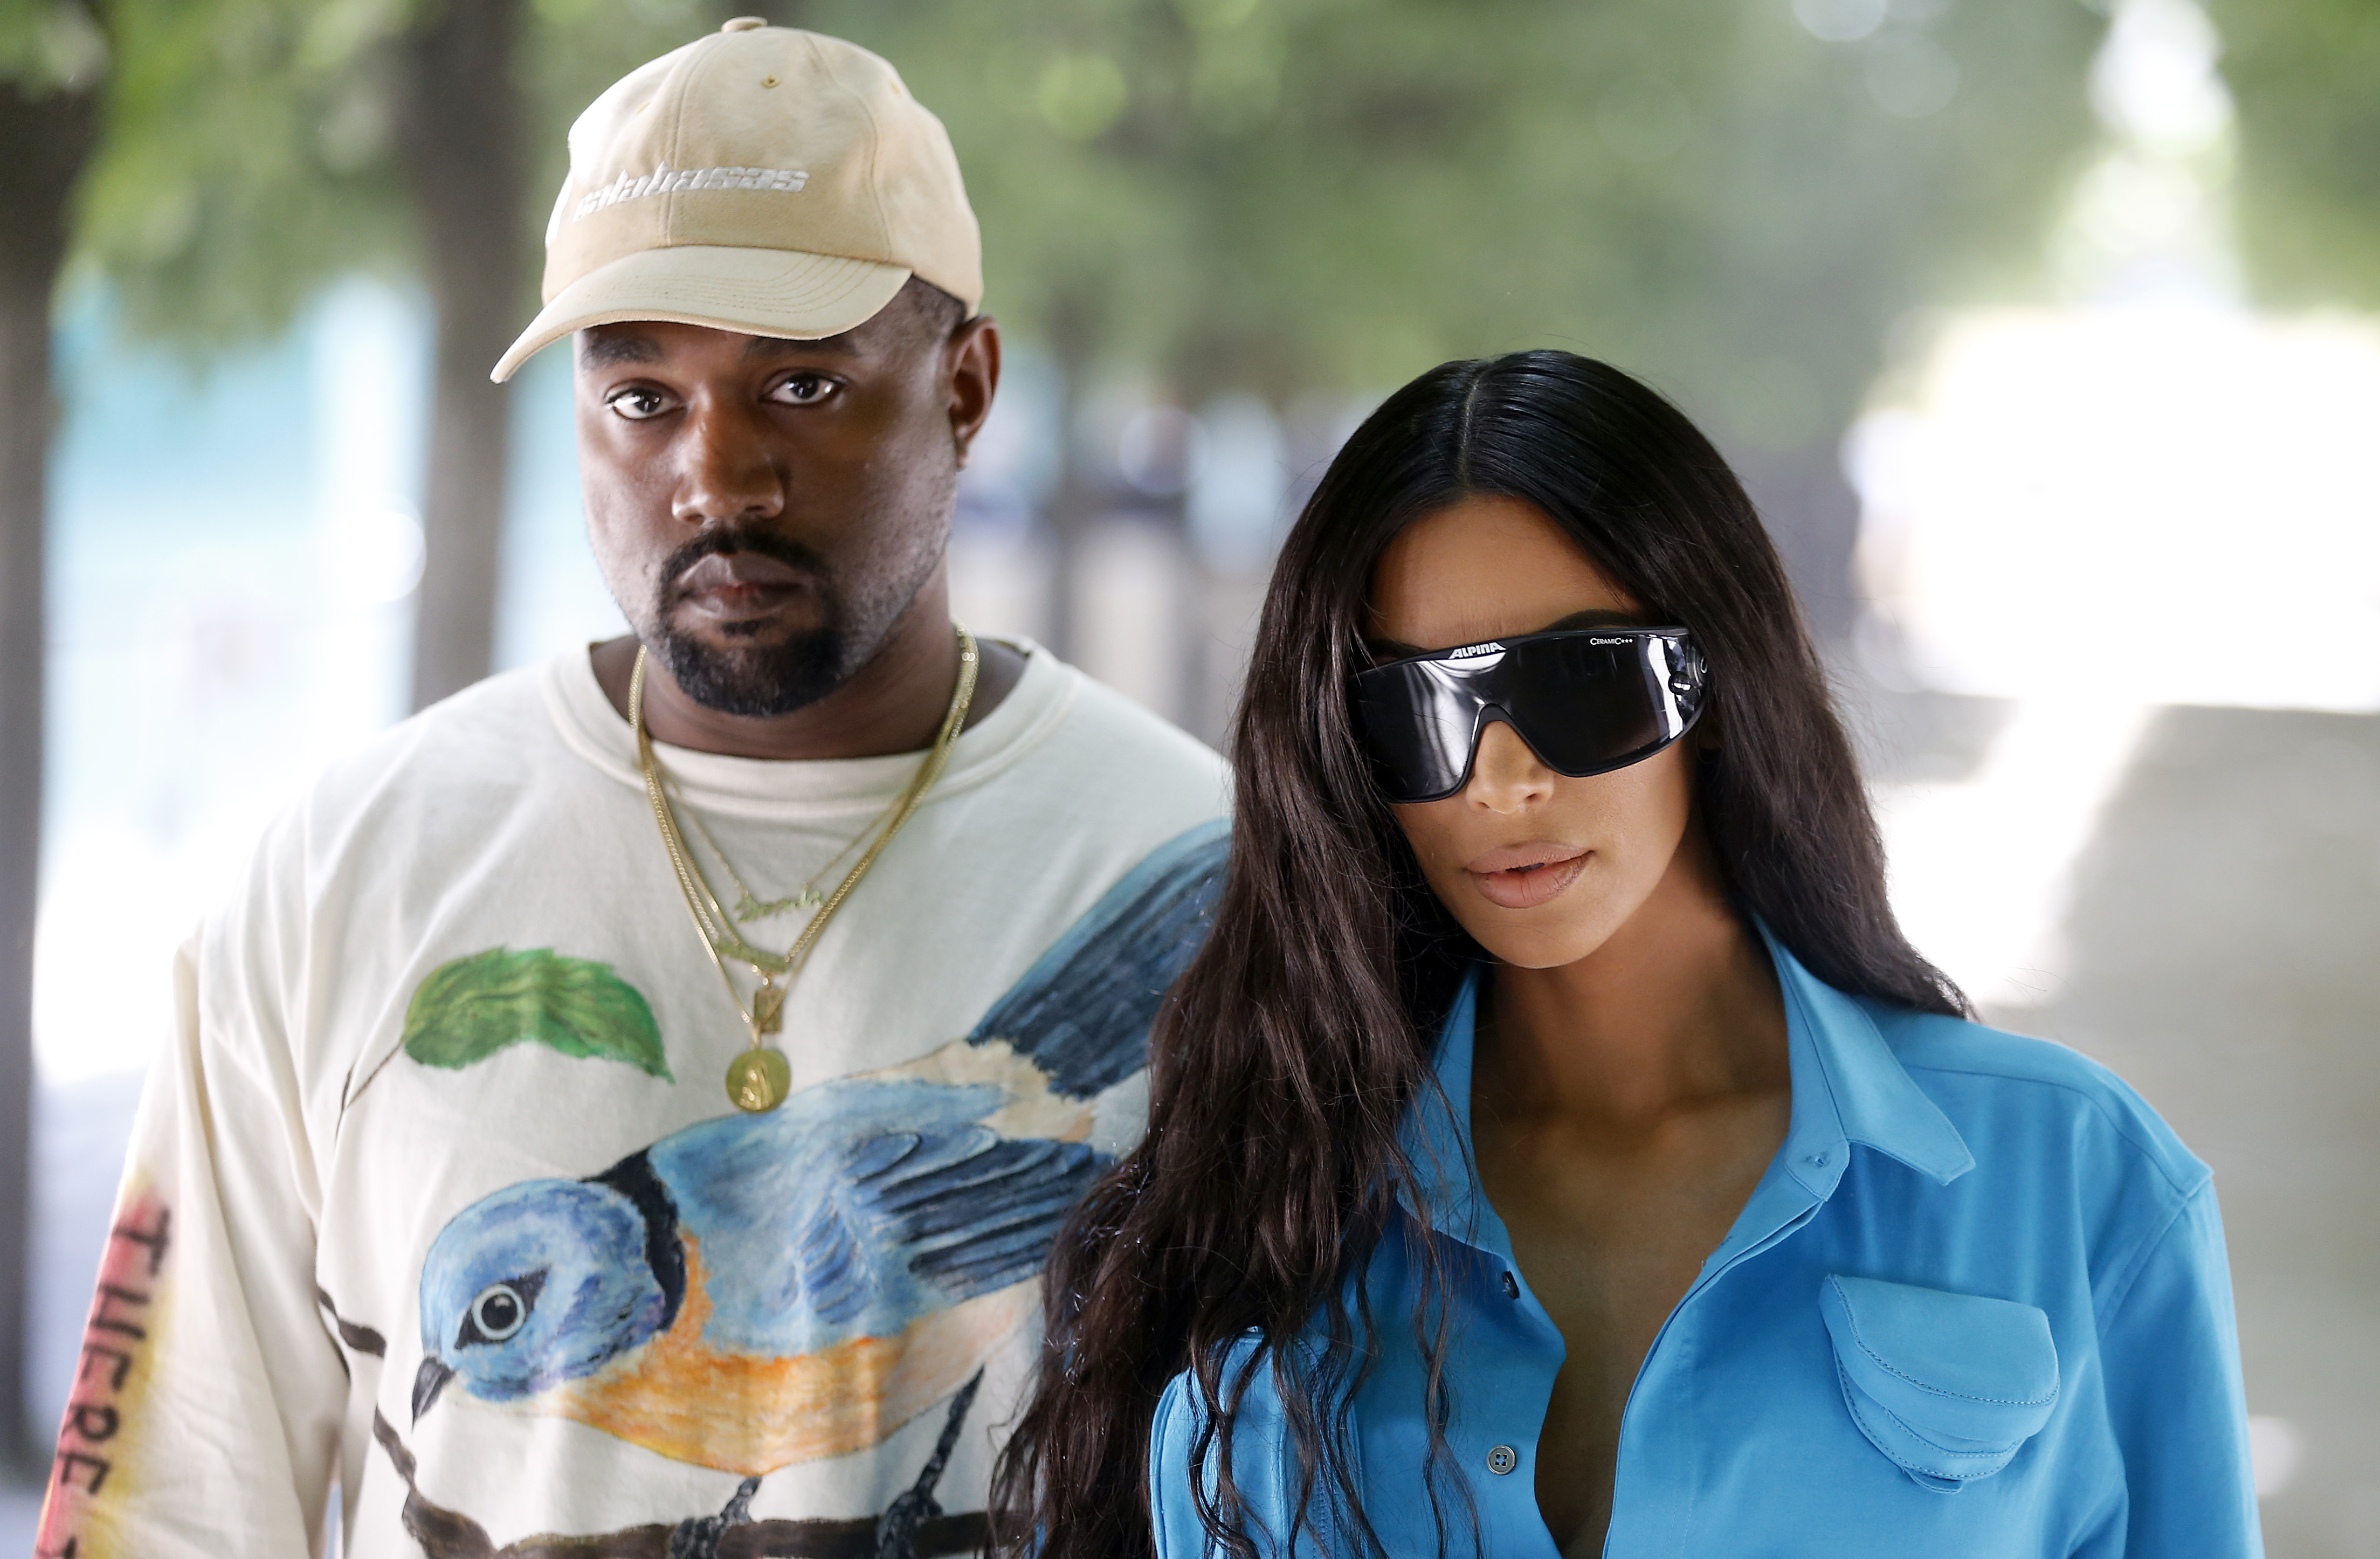 e3a96e0b84817 Kim Kardashian And Kanye West s  20M Dream Home Is In Danger Of Burning  Down As Fire Reaches Property